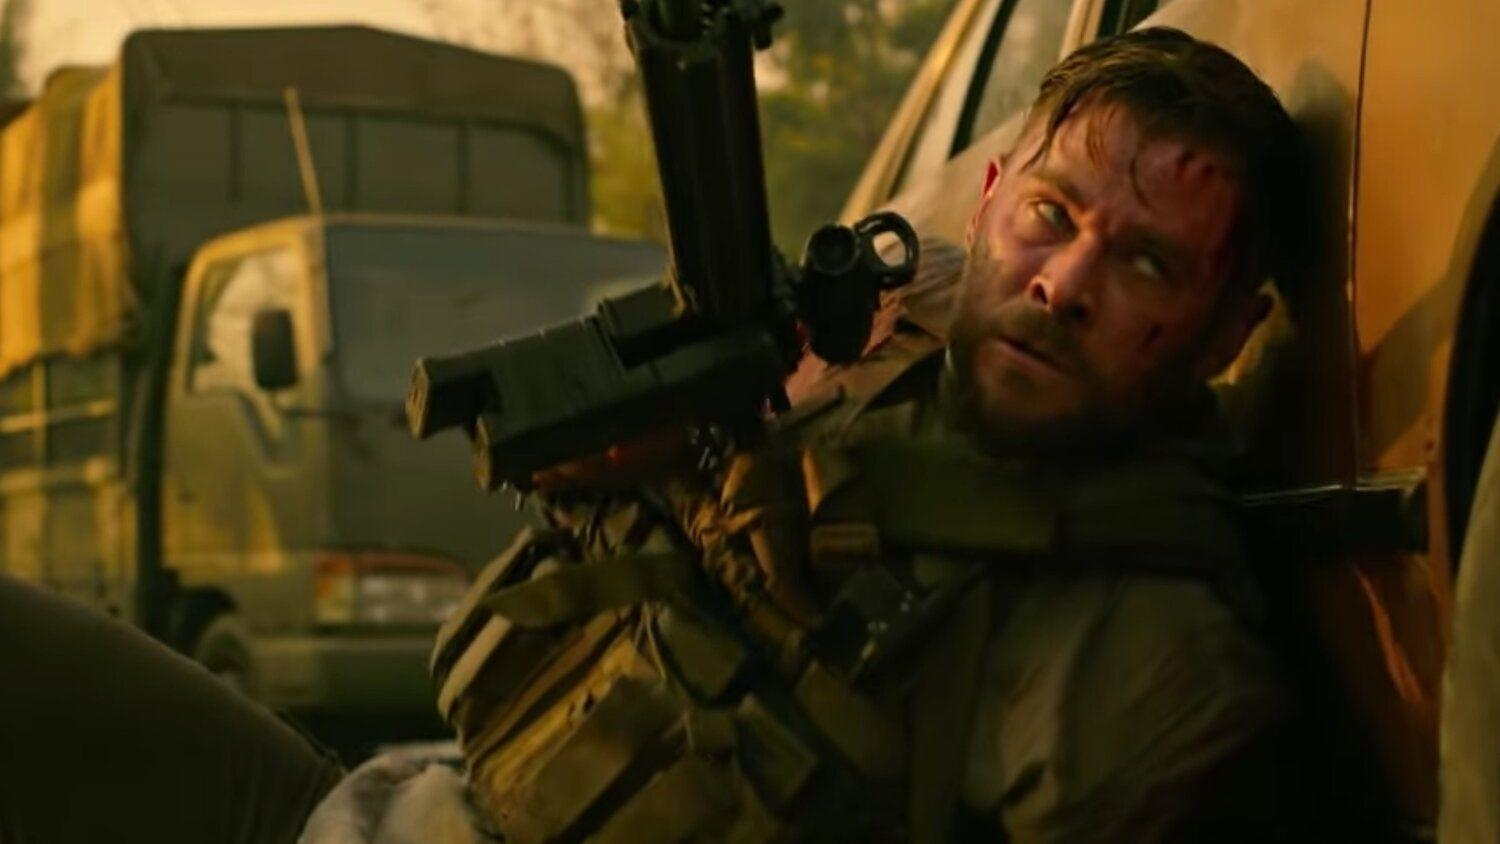 Extraction' Trailer: Netflix Has a Marketing Problem